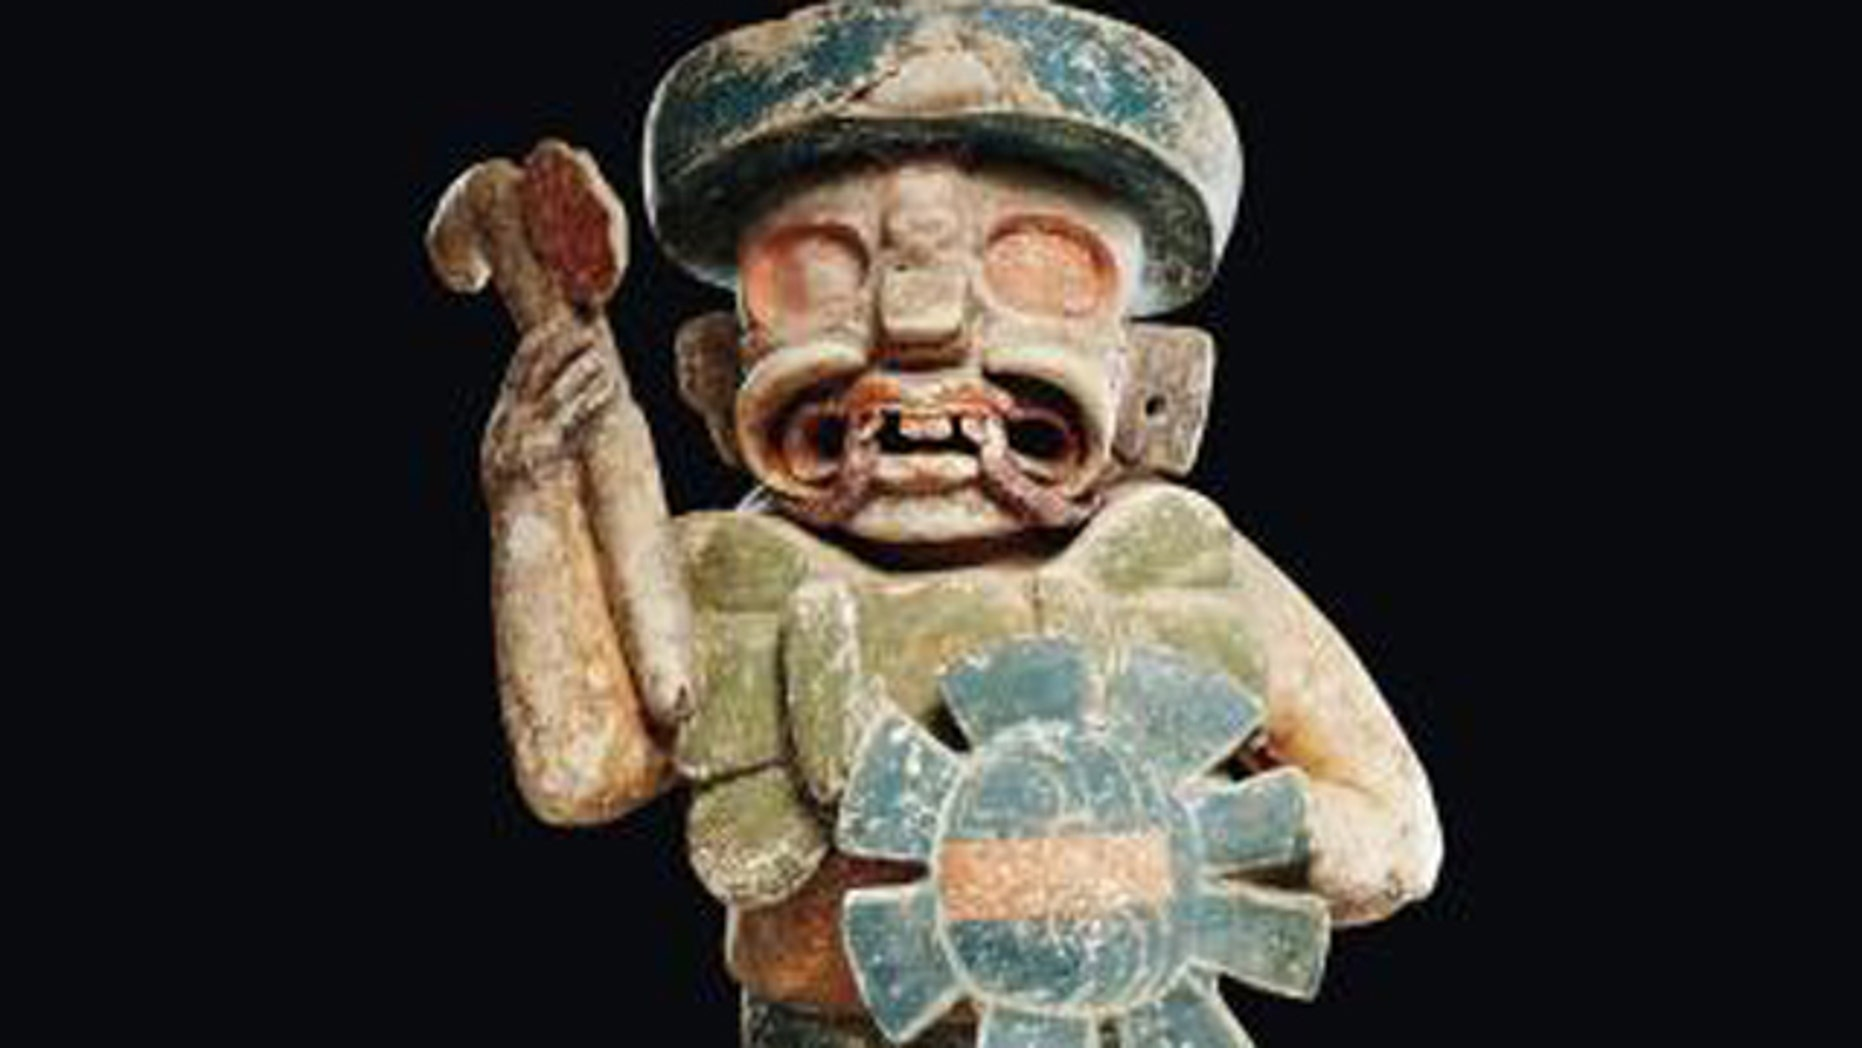 The Mexican government on Wednesday said a Mayan-style statue that brought a record $4 million (2.9 million euros) at auction this week is a fake. Auctioneers vow it is genuine and claim Mexico wants to quash legal sales of pre-Hispanic artifacts.